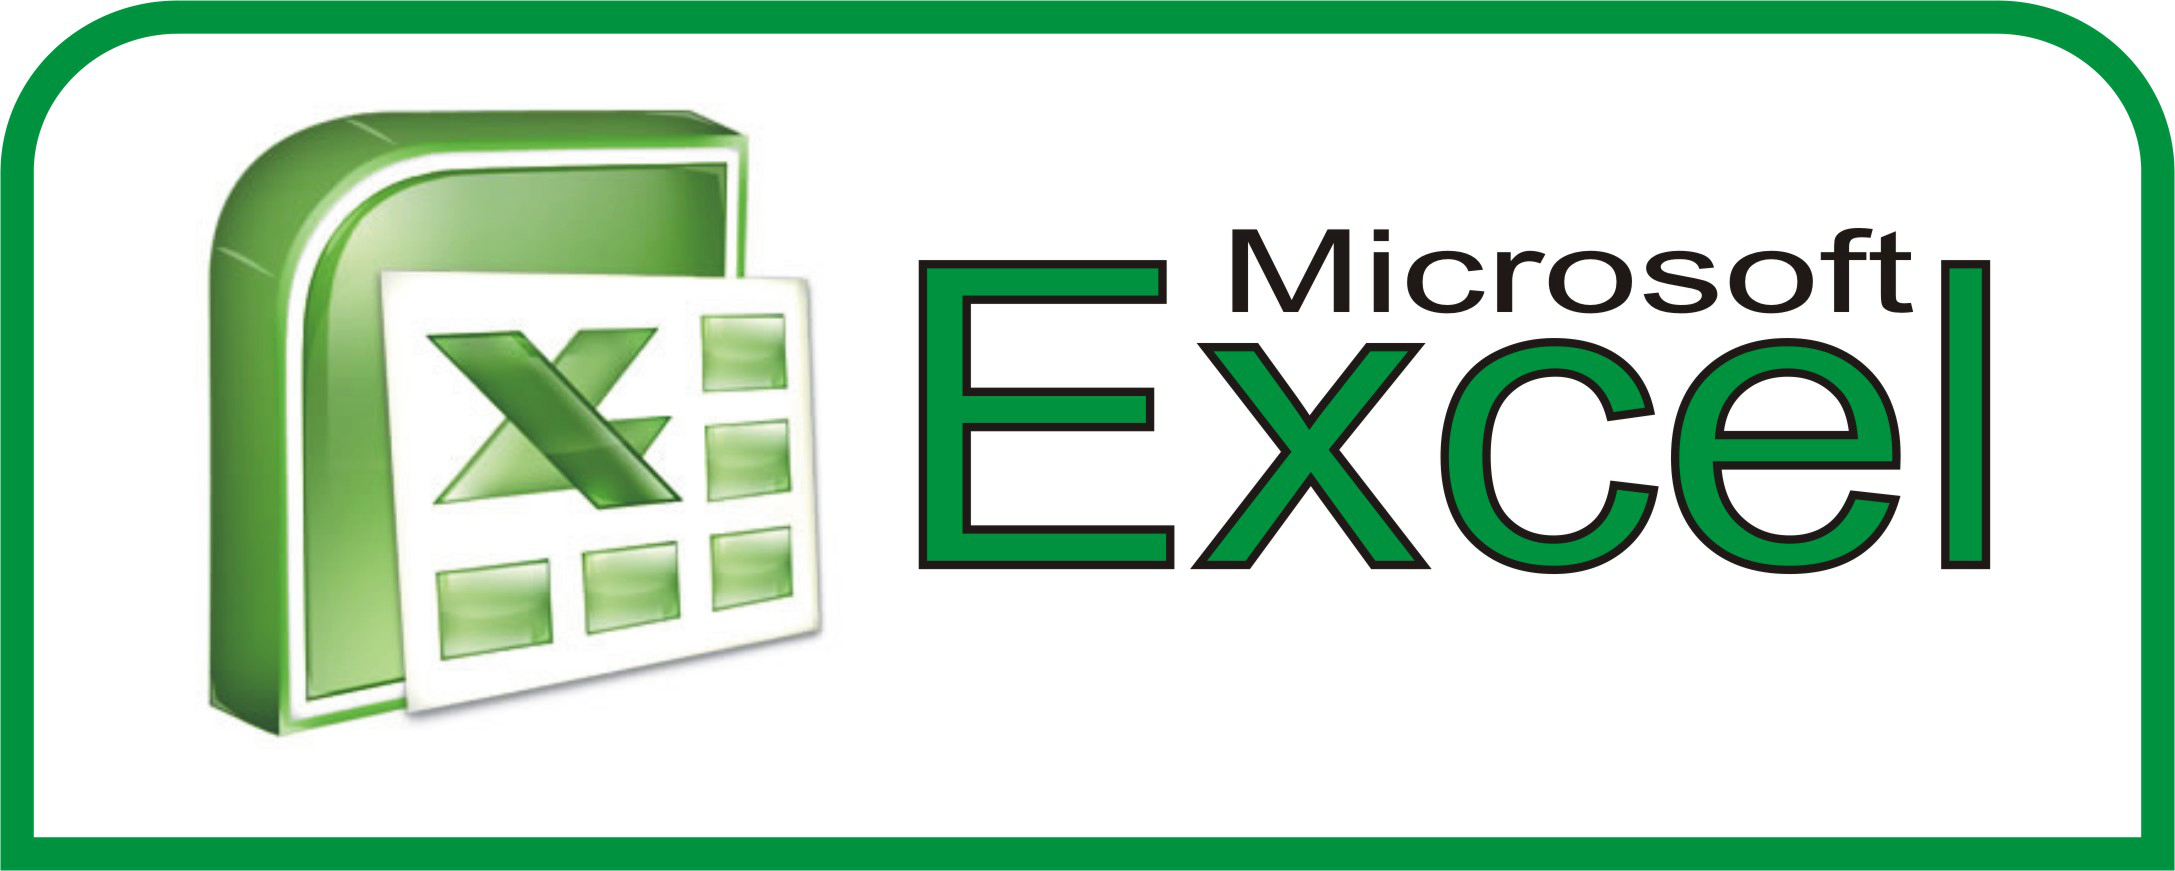 Ediblewildsus  Inspiring  Excel Shortcuts You Probably Didnt Know About  Techdissected With Entrancing Excel Rnd Besides Tree Diagram In Excel Furthermore Excel Center Concerts With Beauteous Excel Apr Formula Also Definition Of Label In Excel In Addition Exporting To Excel And Advanced Excel Vba As Well As Plus Or Minus Symbol In Excel Additionally Current Version Of Excel From Techdissectedcom With Ediblewildsus  Entrancing  Excel Shortcuts You Probably Didnt Know About  Techdissected With Beauteous Excel Rnd Besides Tree Diagram In Excel Furthermore Excel Center Concerts And Inspiring Excel Apr Formula Also Definition Of Label In Excel In Addition Exporting To Excel From Techdissectedcom